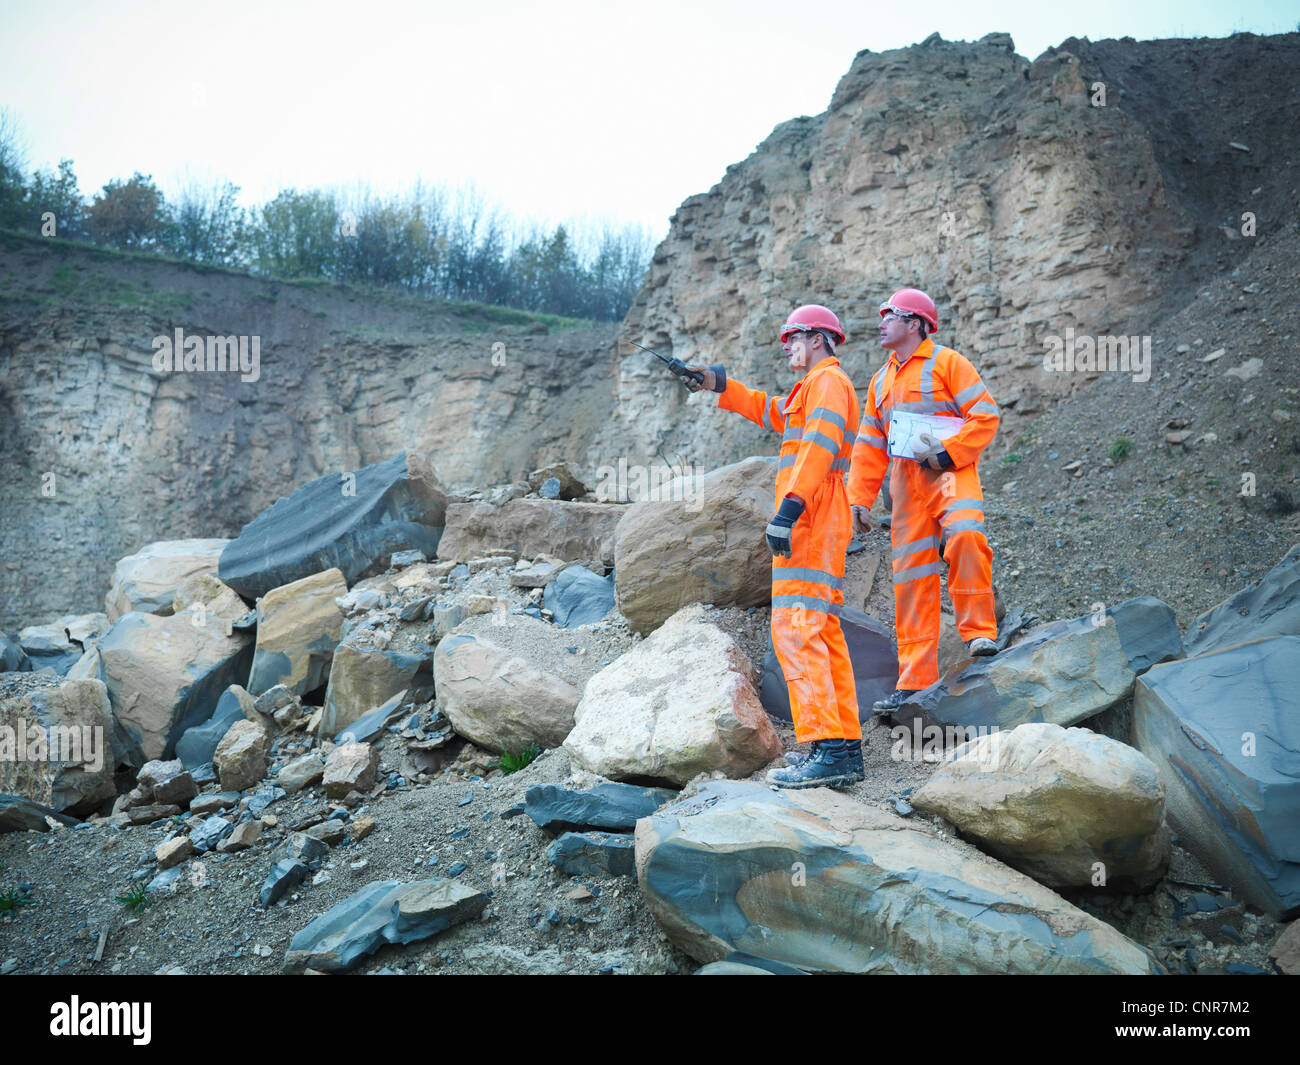 Workers examining rocks in quarry - Stock Image